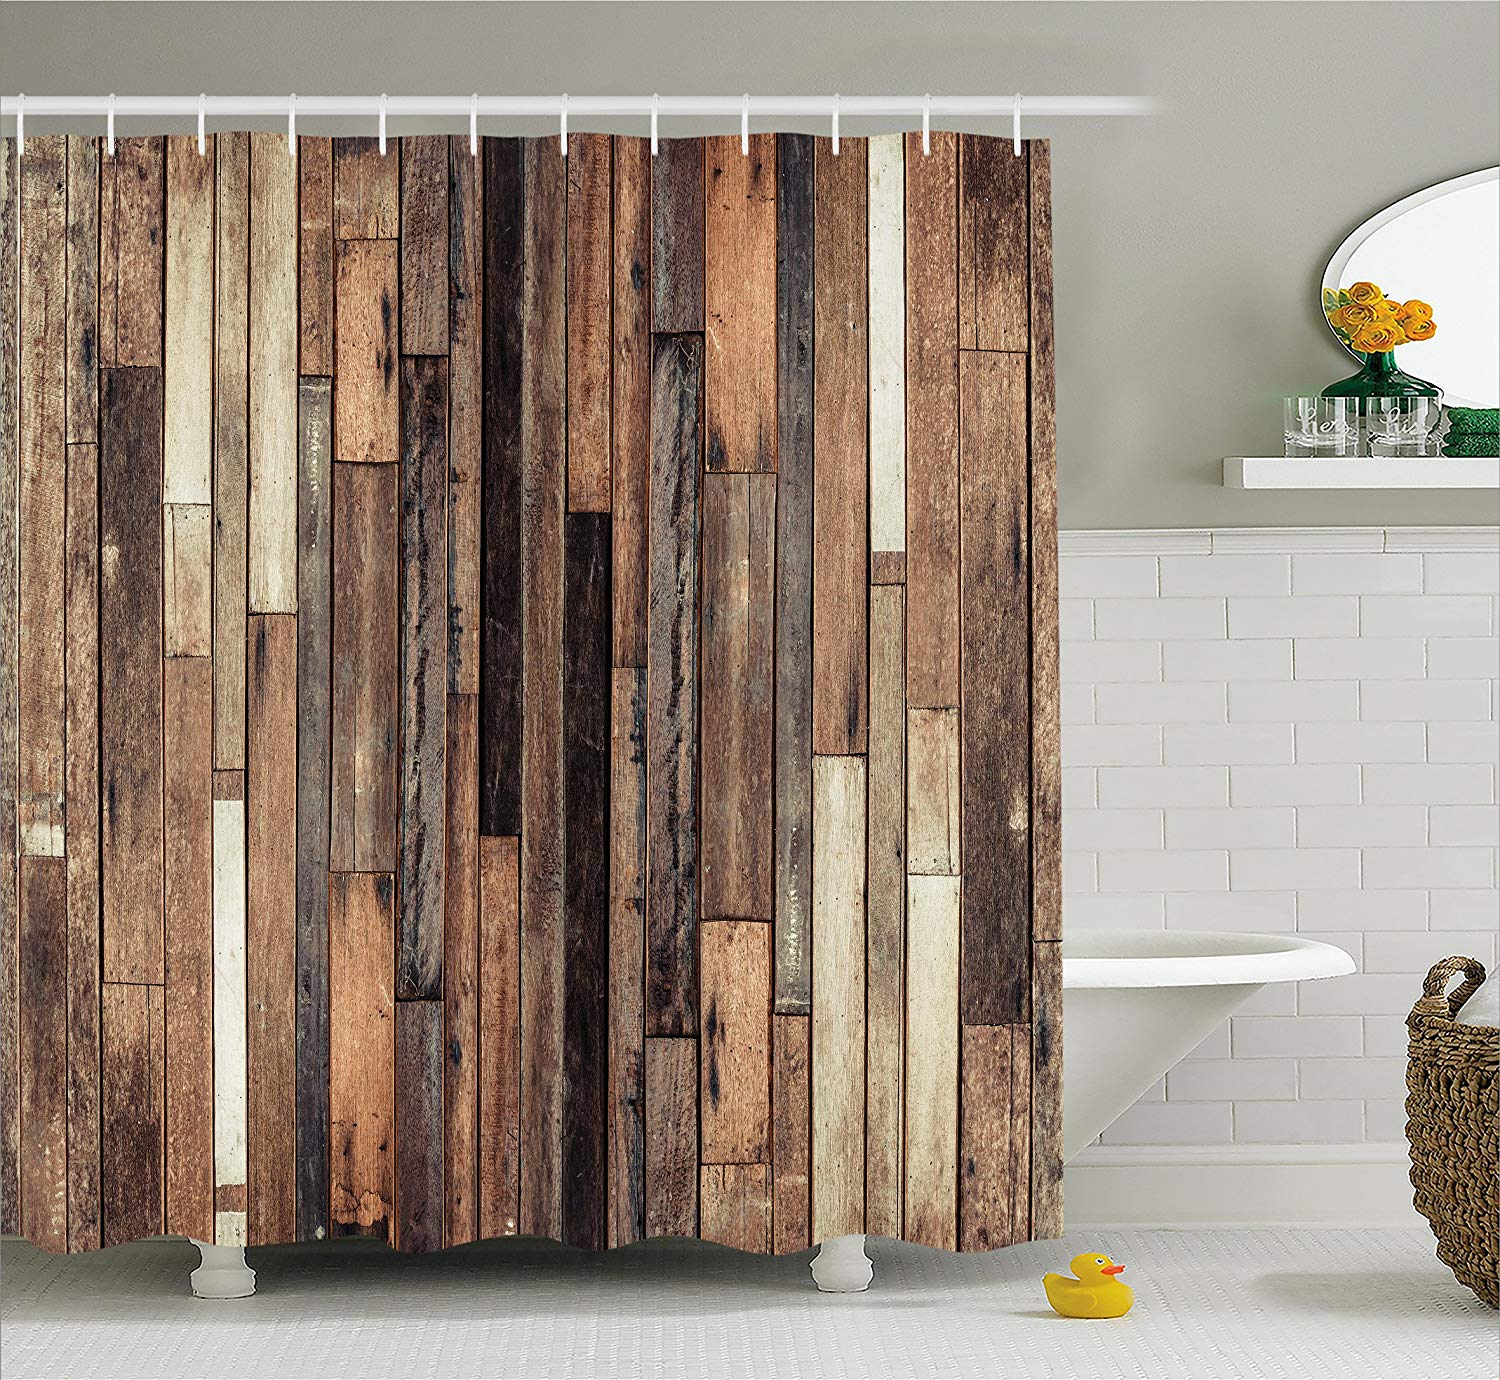 Wooden Shower Curtain Brown Old Hardwood Floor Plank Grunge Lodge